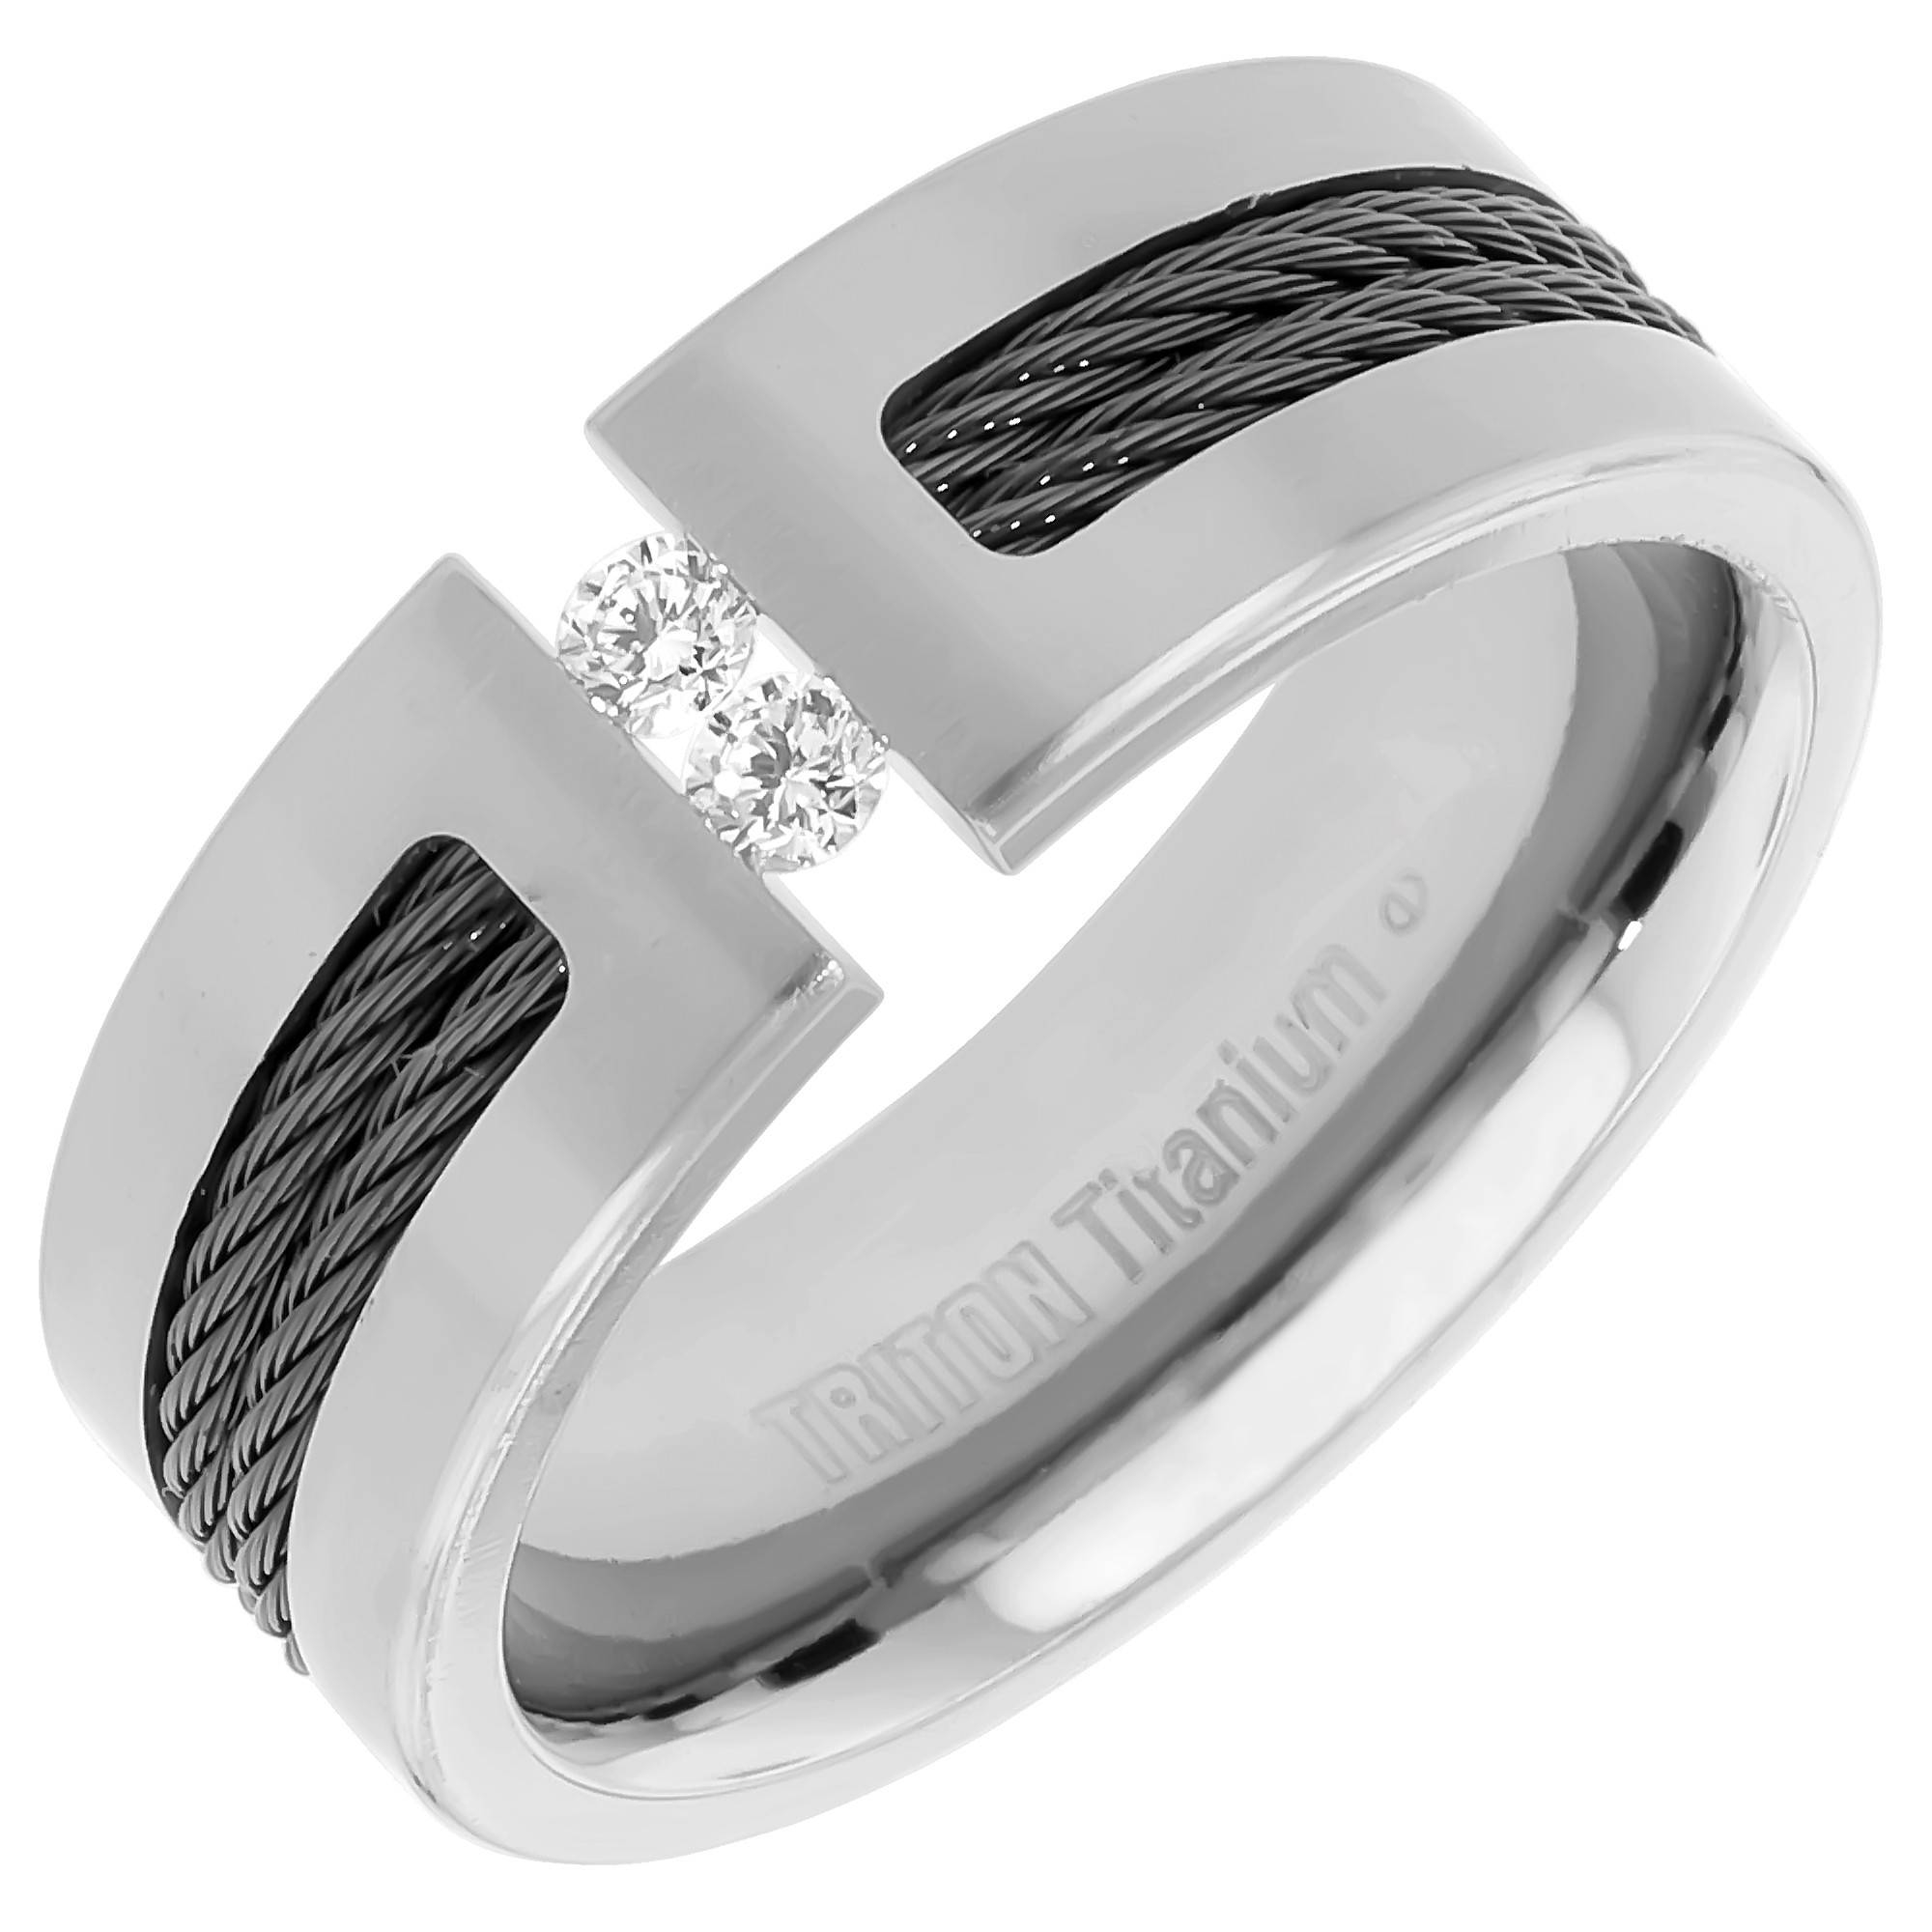 Mens Titanium Wedding Bands – Wedding Definition Ideas In Cheap Men's Diamond Wedding Bands (View 5 of 15)